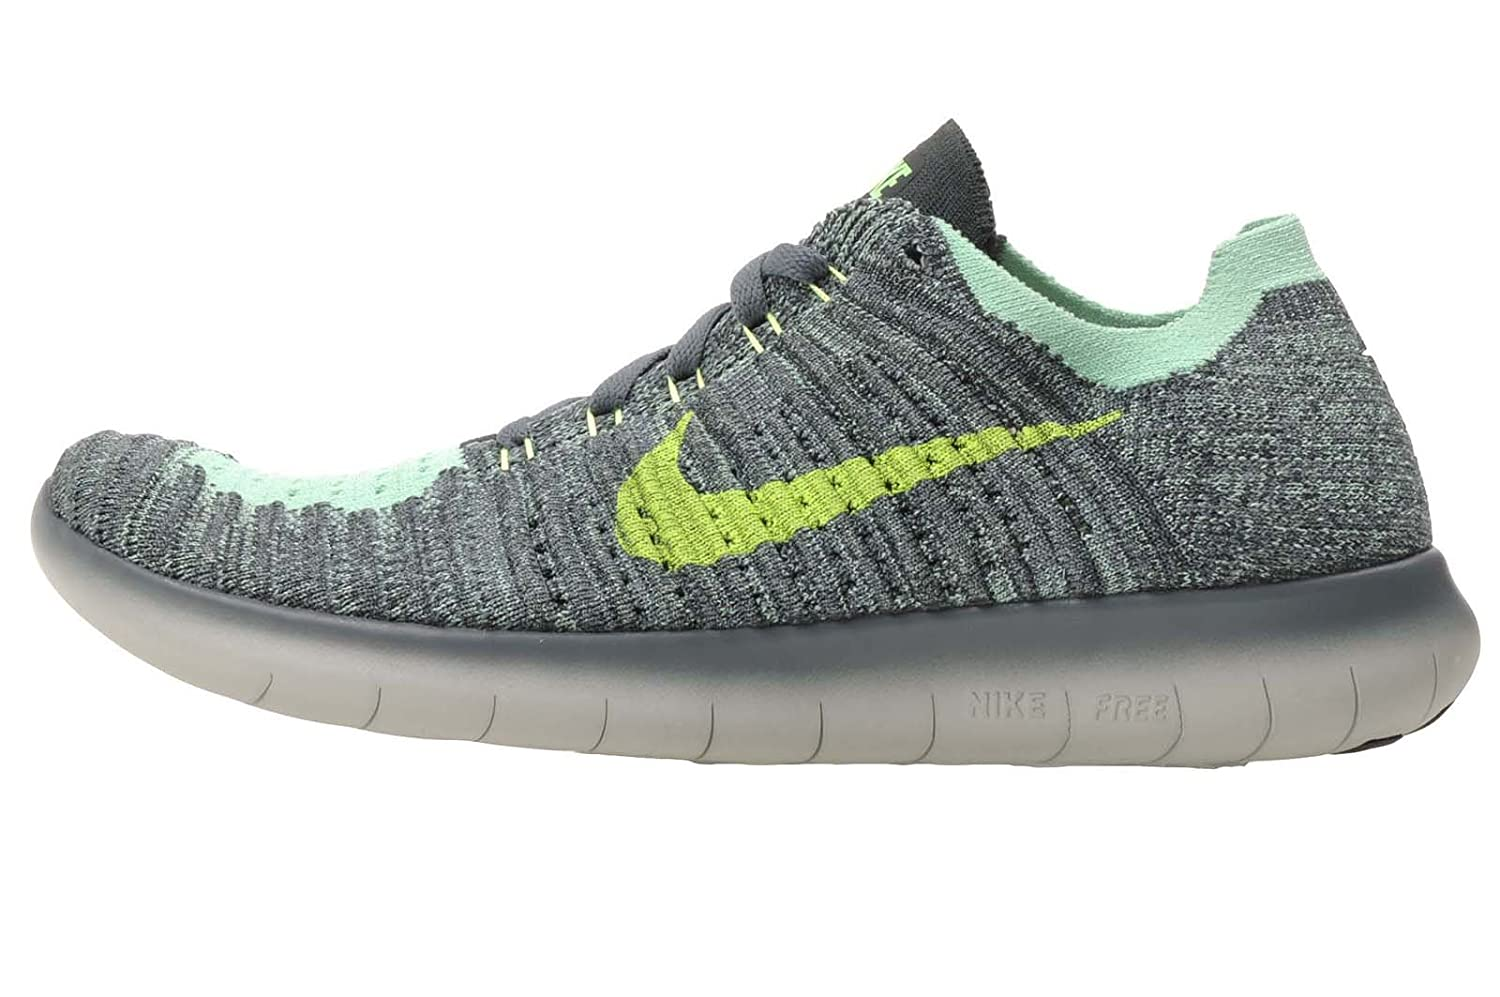 new style a8a44 3e4a3 ... spain buy nike free rn flyknit junior trainer 6 uk 40 eu 7y 7c07e d9c36